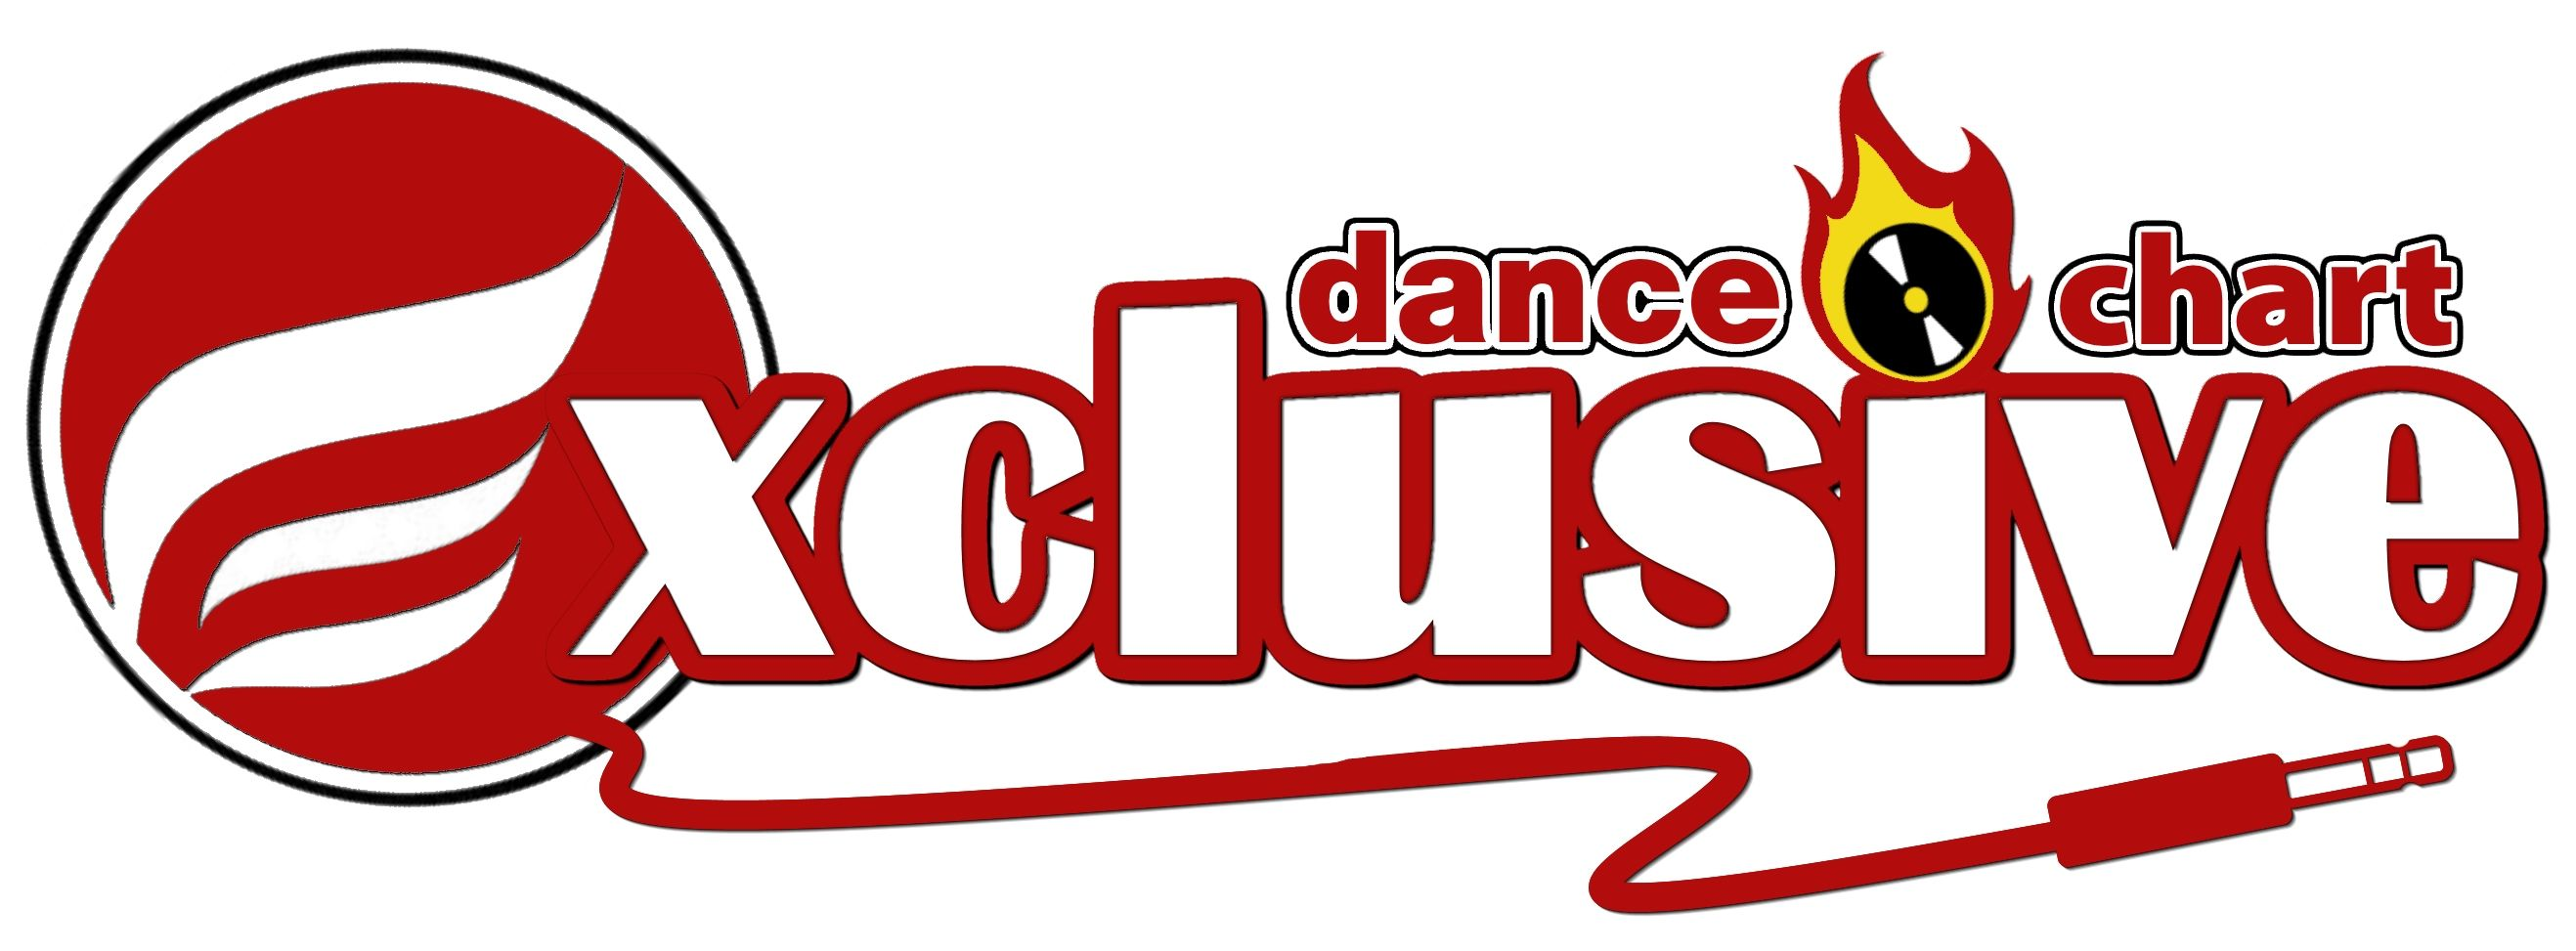 Logo Exclusive Dance Chart